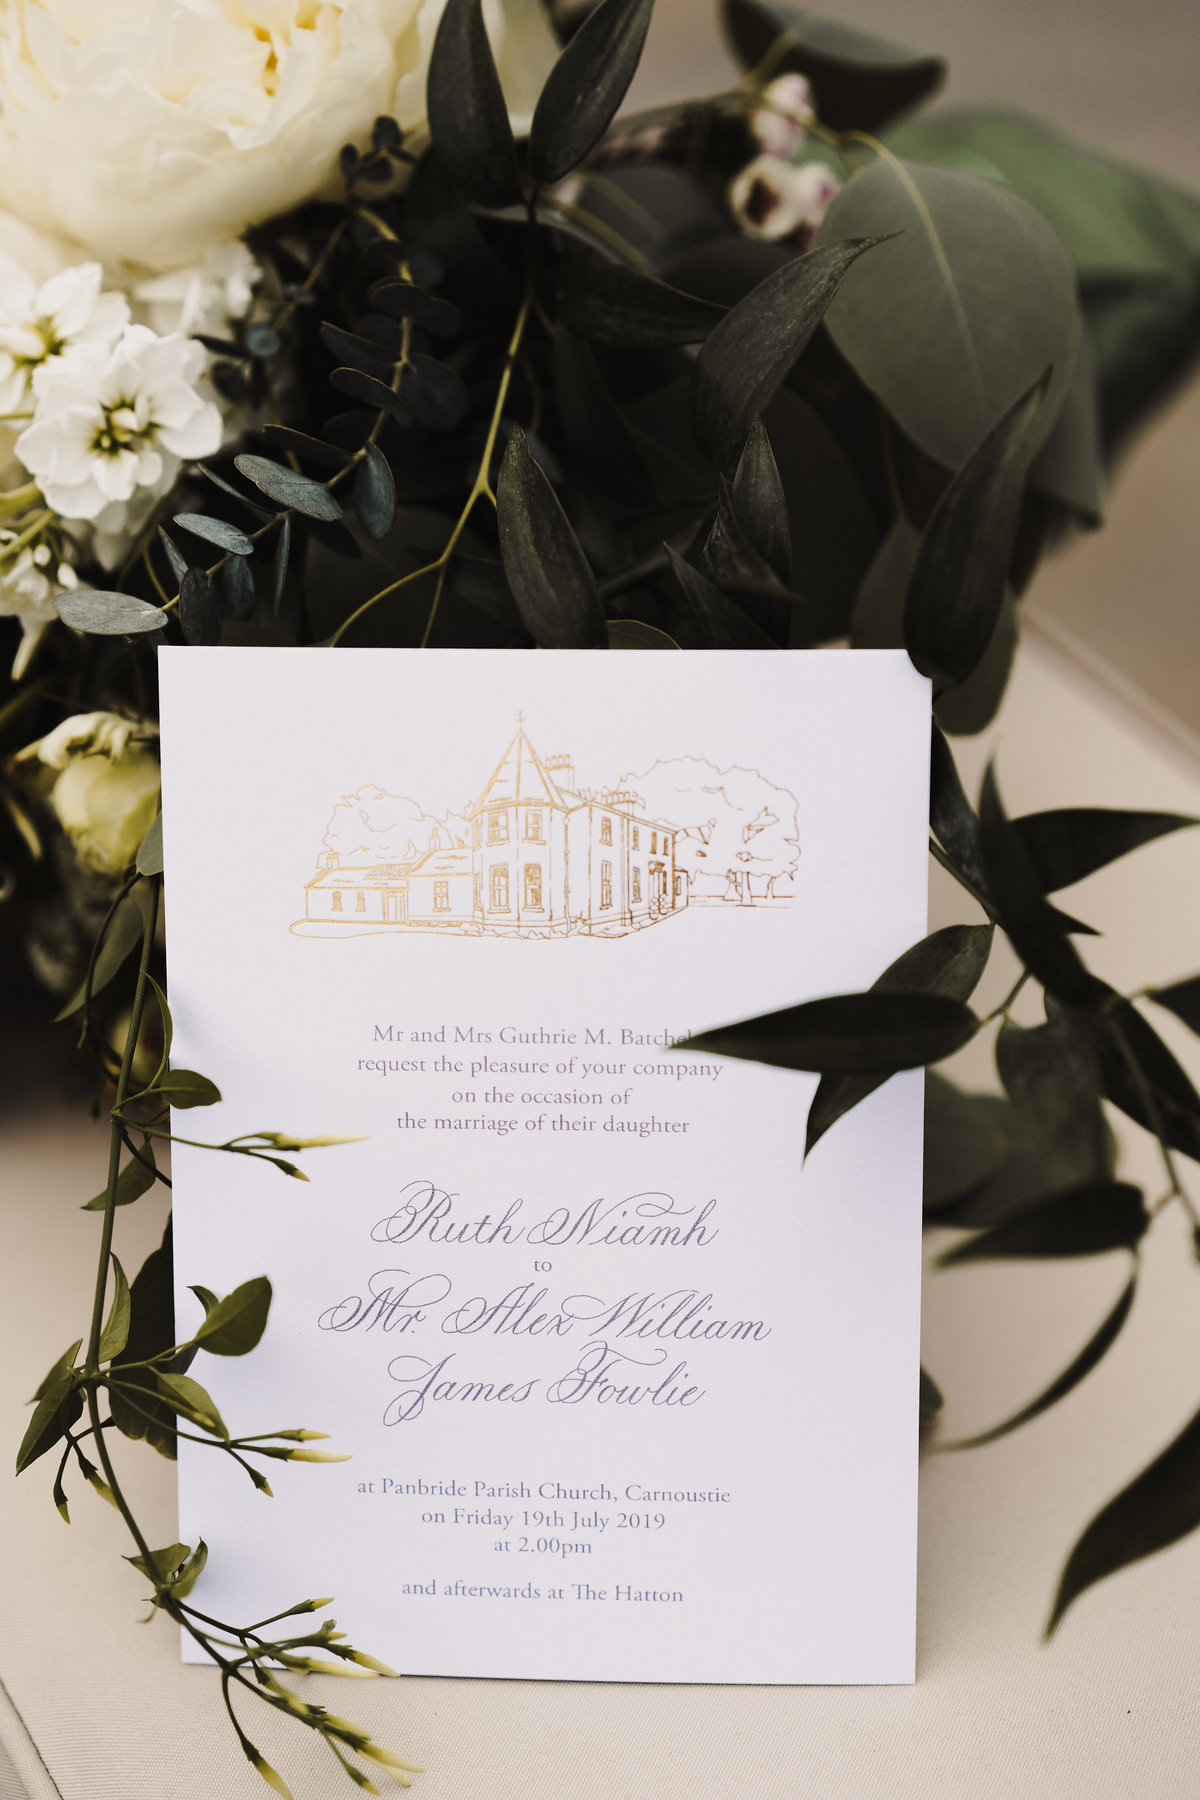 Gold foil venue illustration wedding invitations | Jenni Liandu Calligraphy